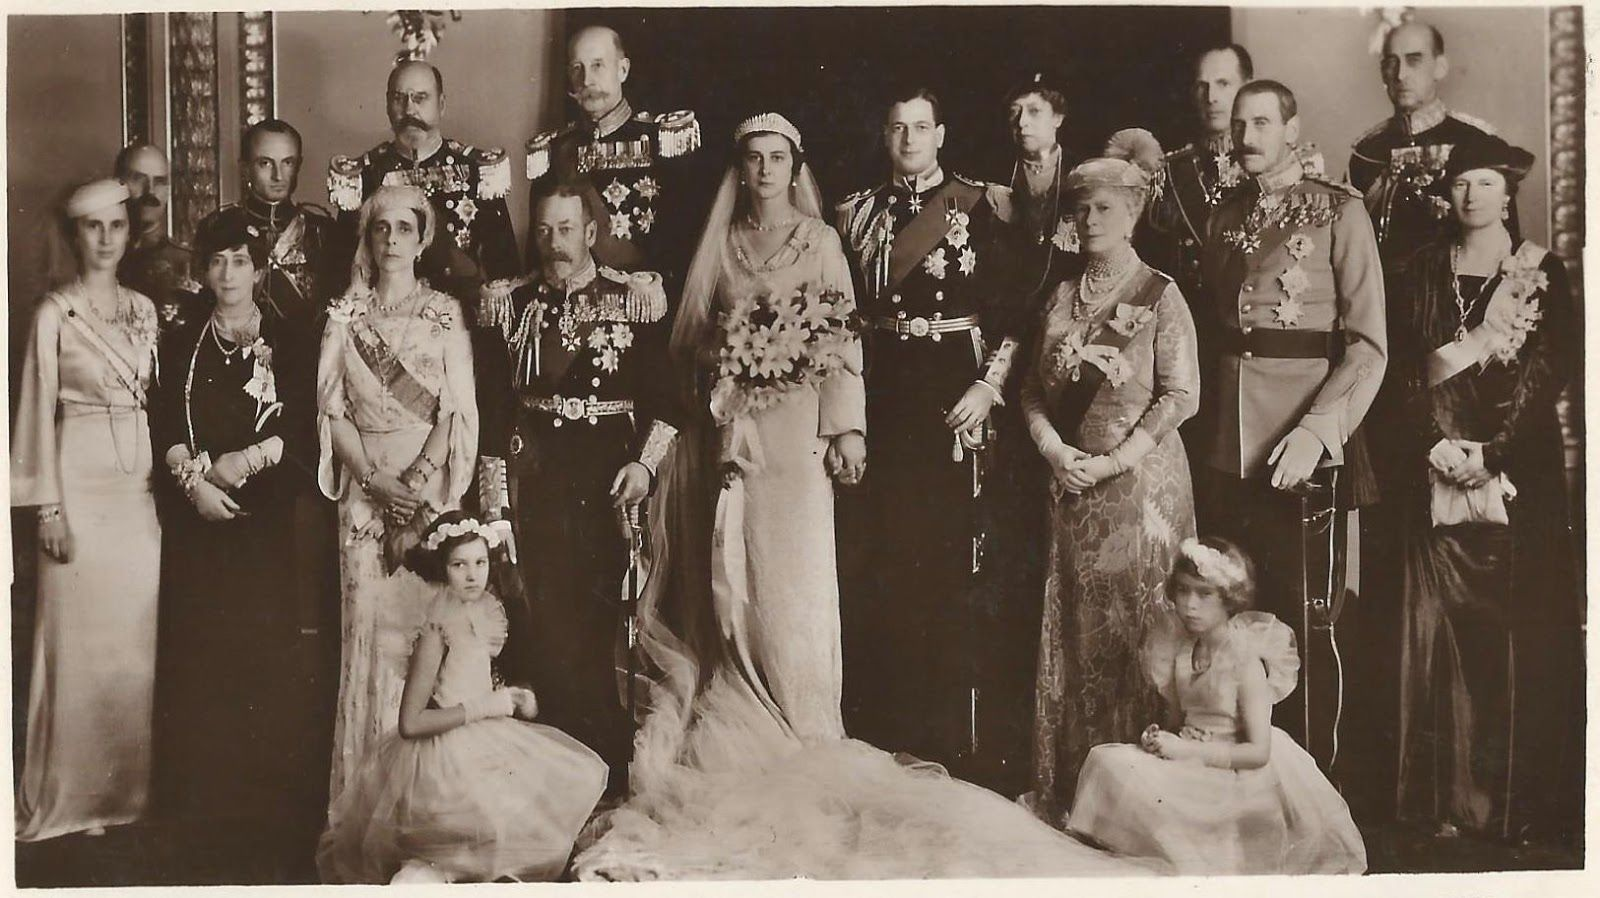 Prince George Duke Of Kent And Princess Marina Of Greece And Denmark On Their Wedding Day Supersize Royal Wedding Gowns Royal Family Pictures Royal Weddings [ 1824 x 1280 Pixel ]